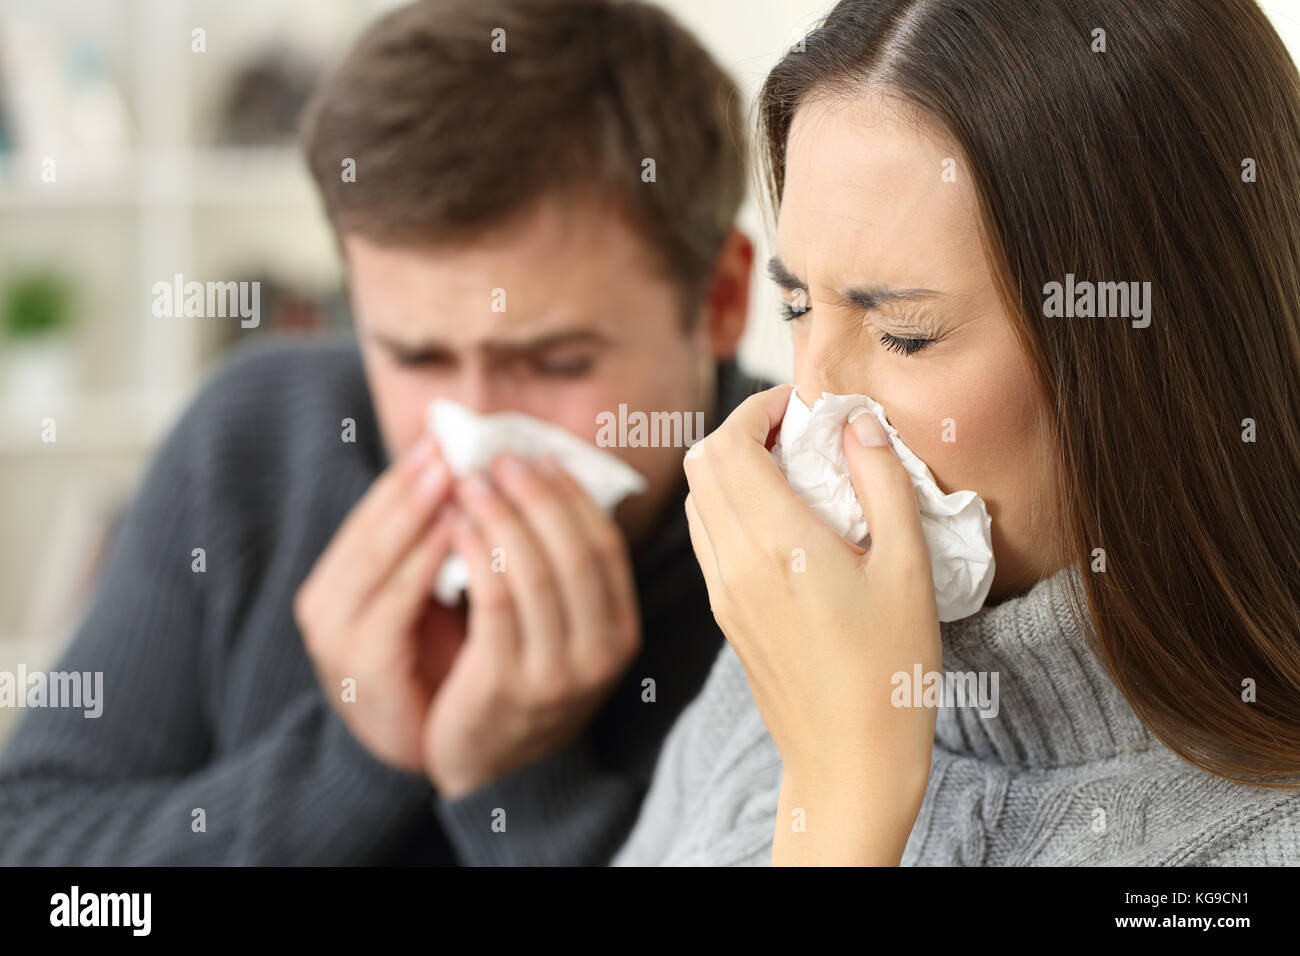 Ill couple wearing sweaters coughing together sitting on a sofa in the living room in a house interior - Stock Image